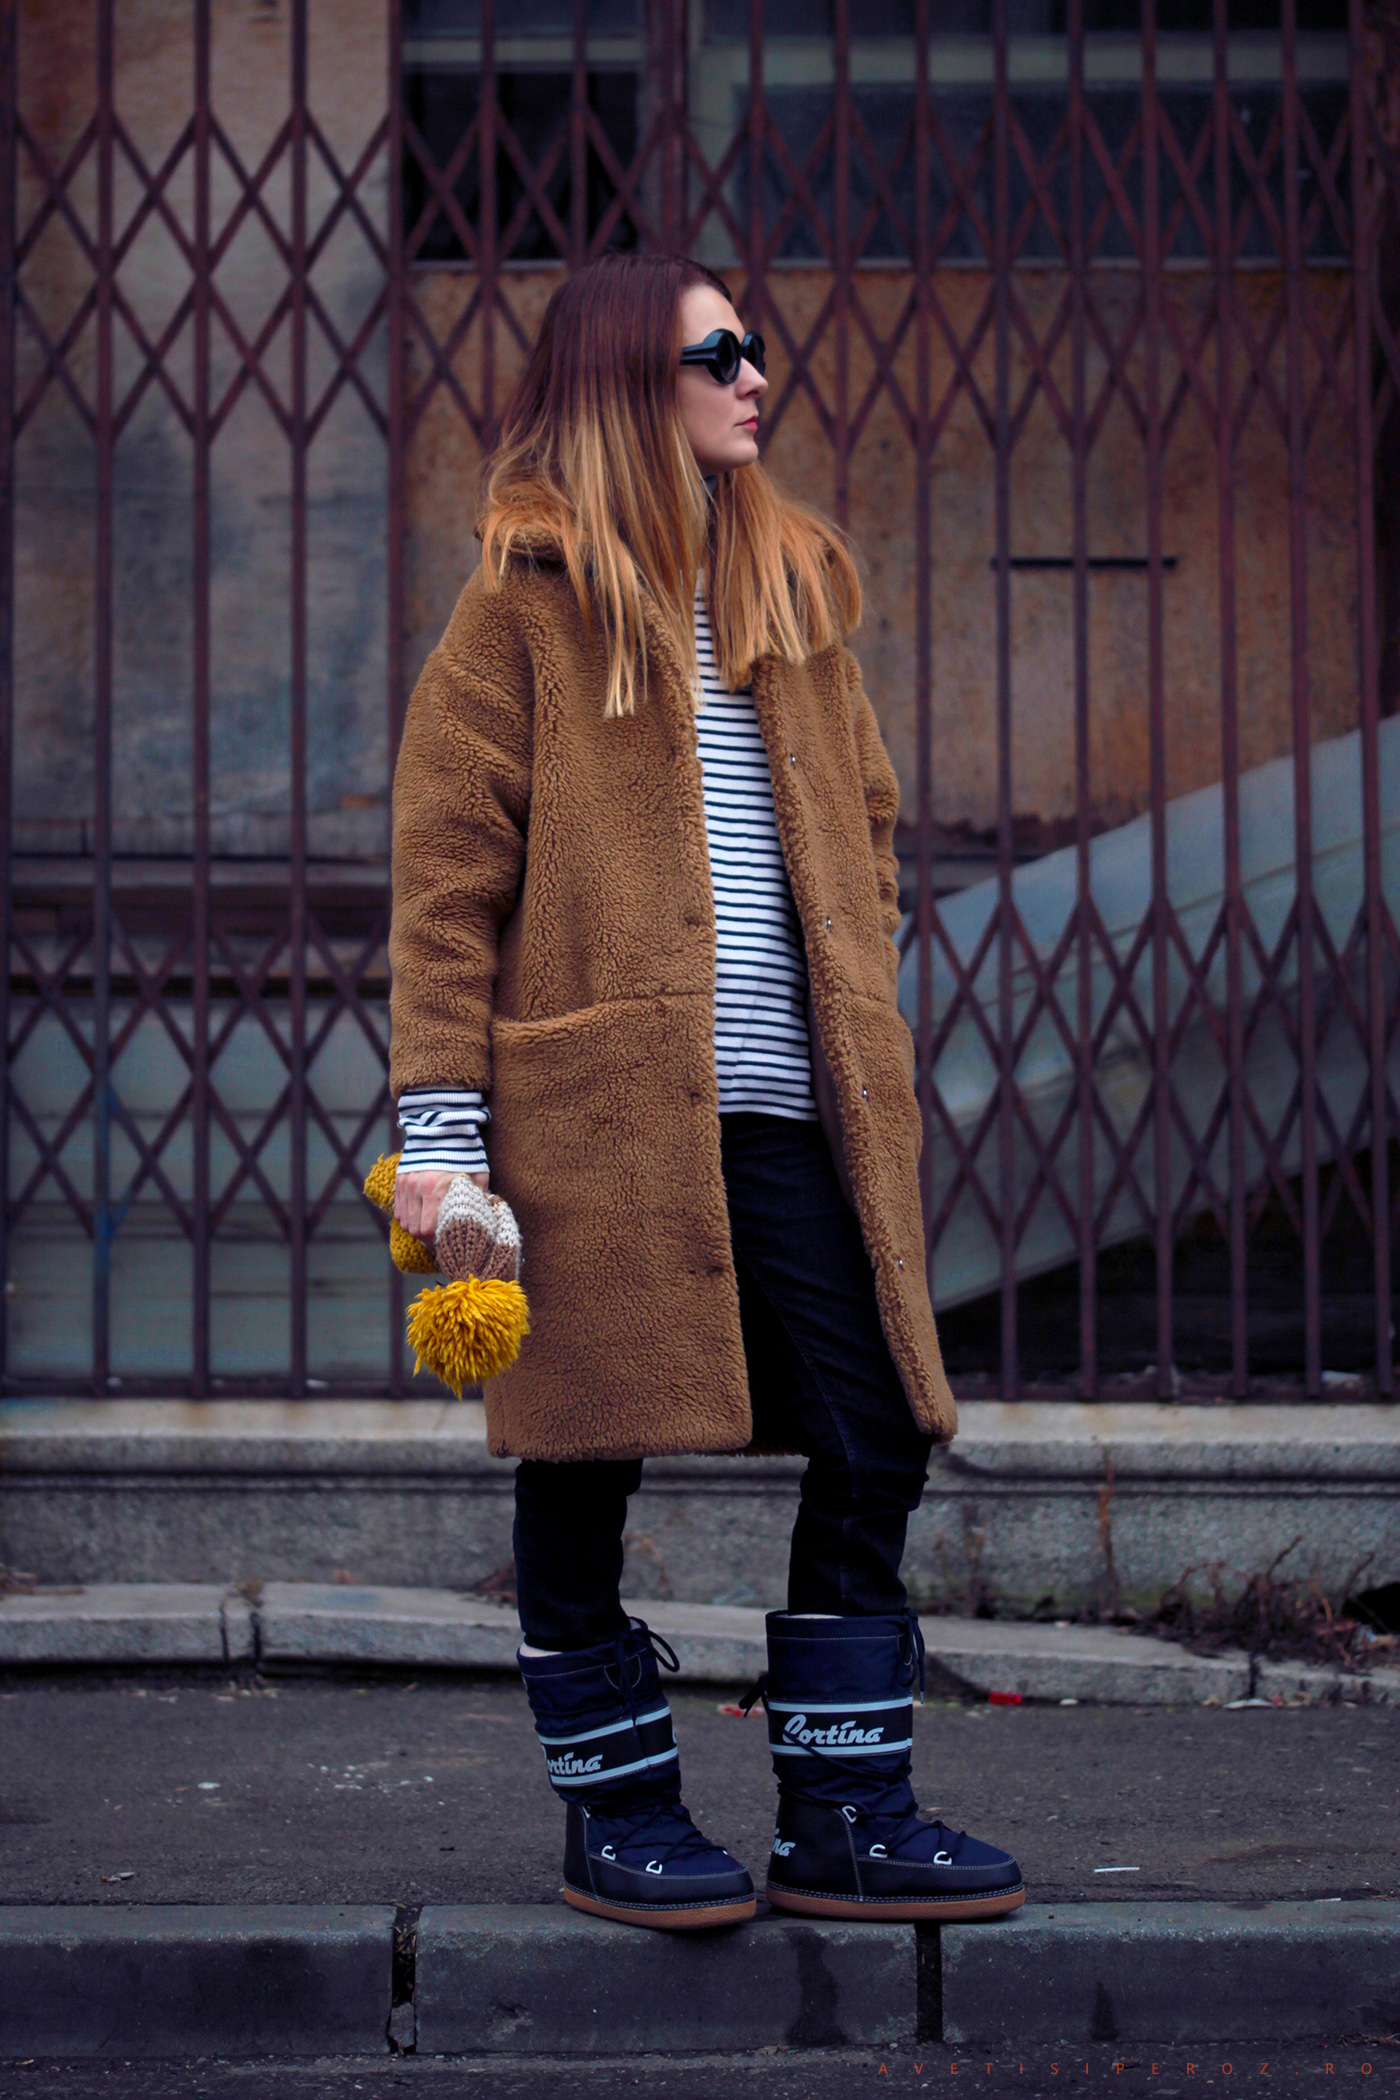 teddy bear coat outfit